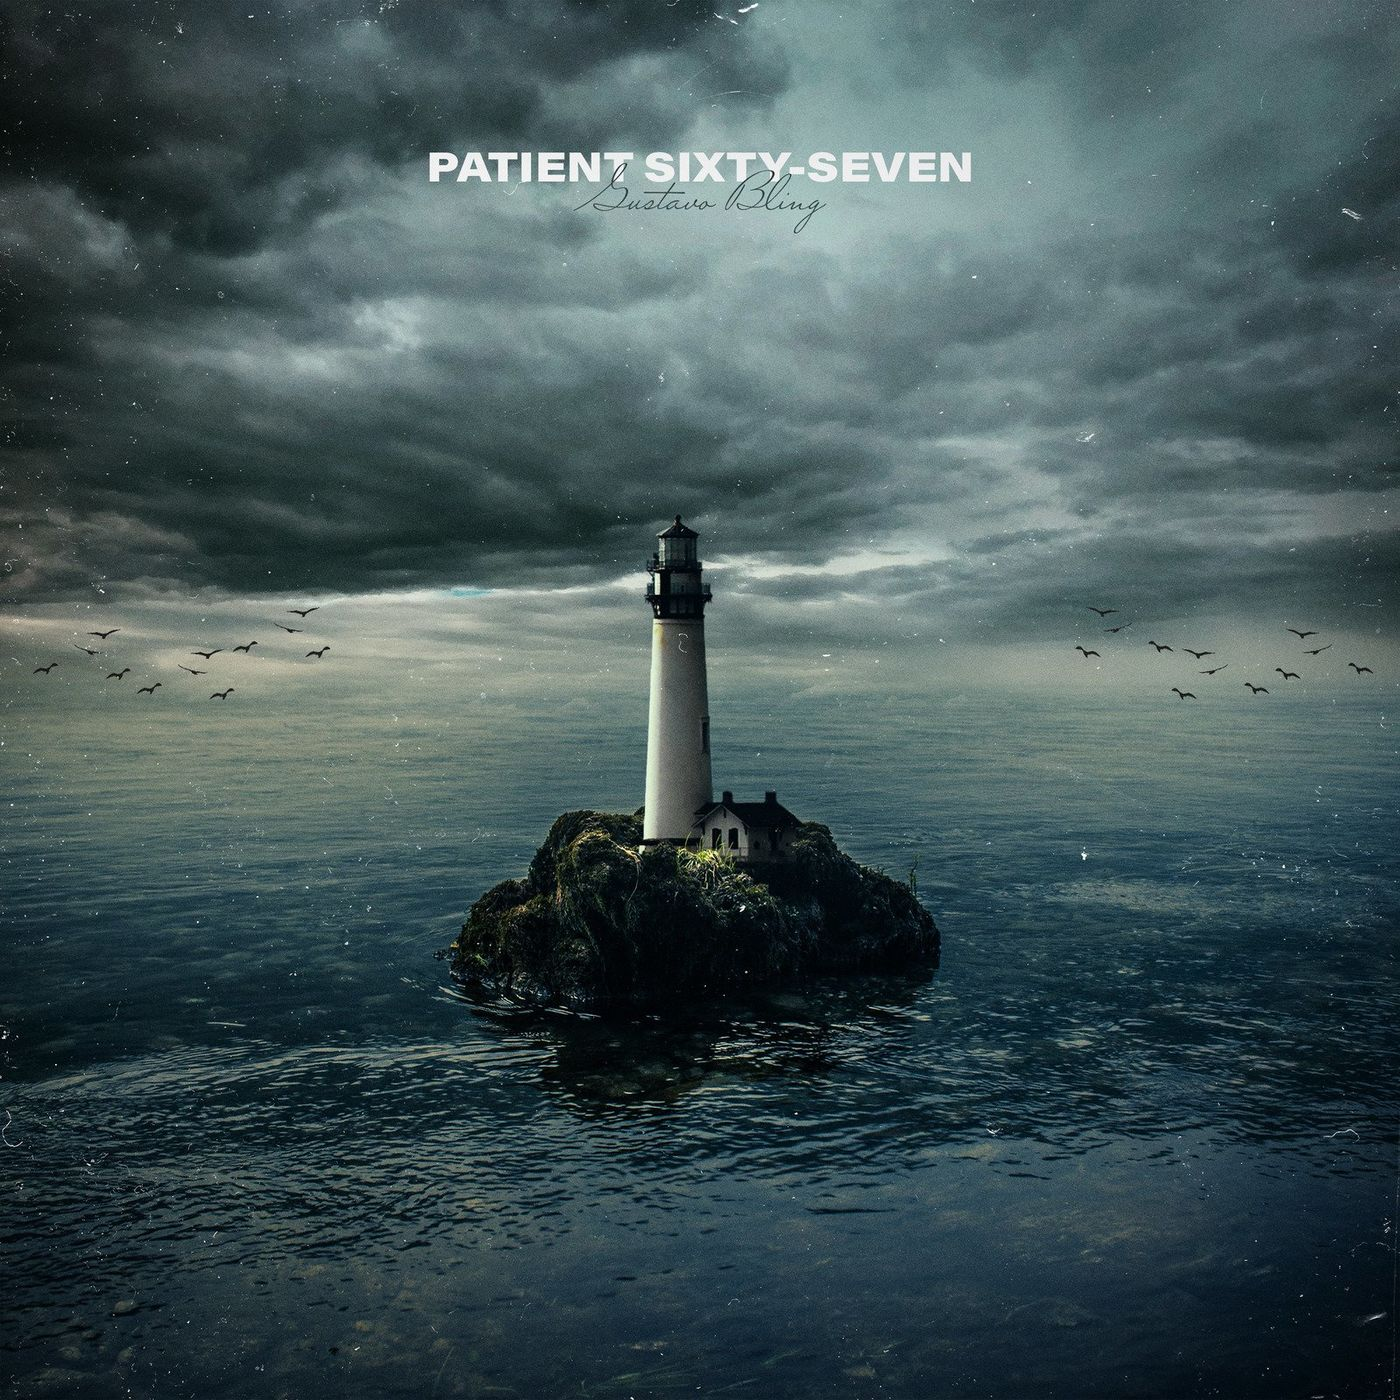 Patient Sixty-Seven - Gustavo Bling [single] (2020)